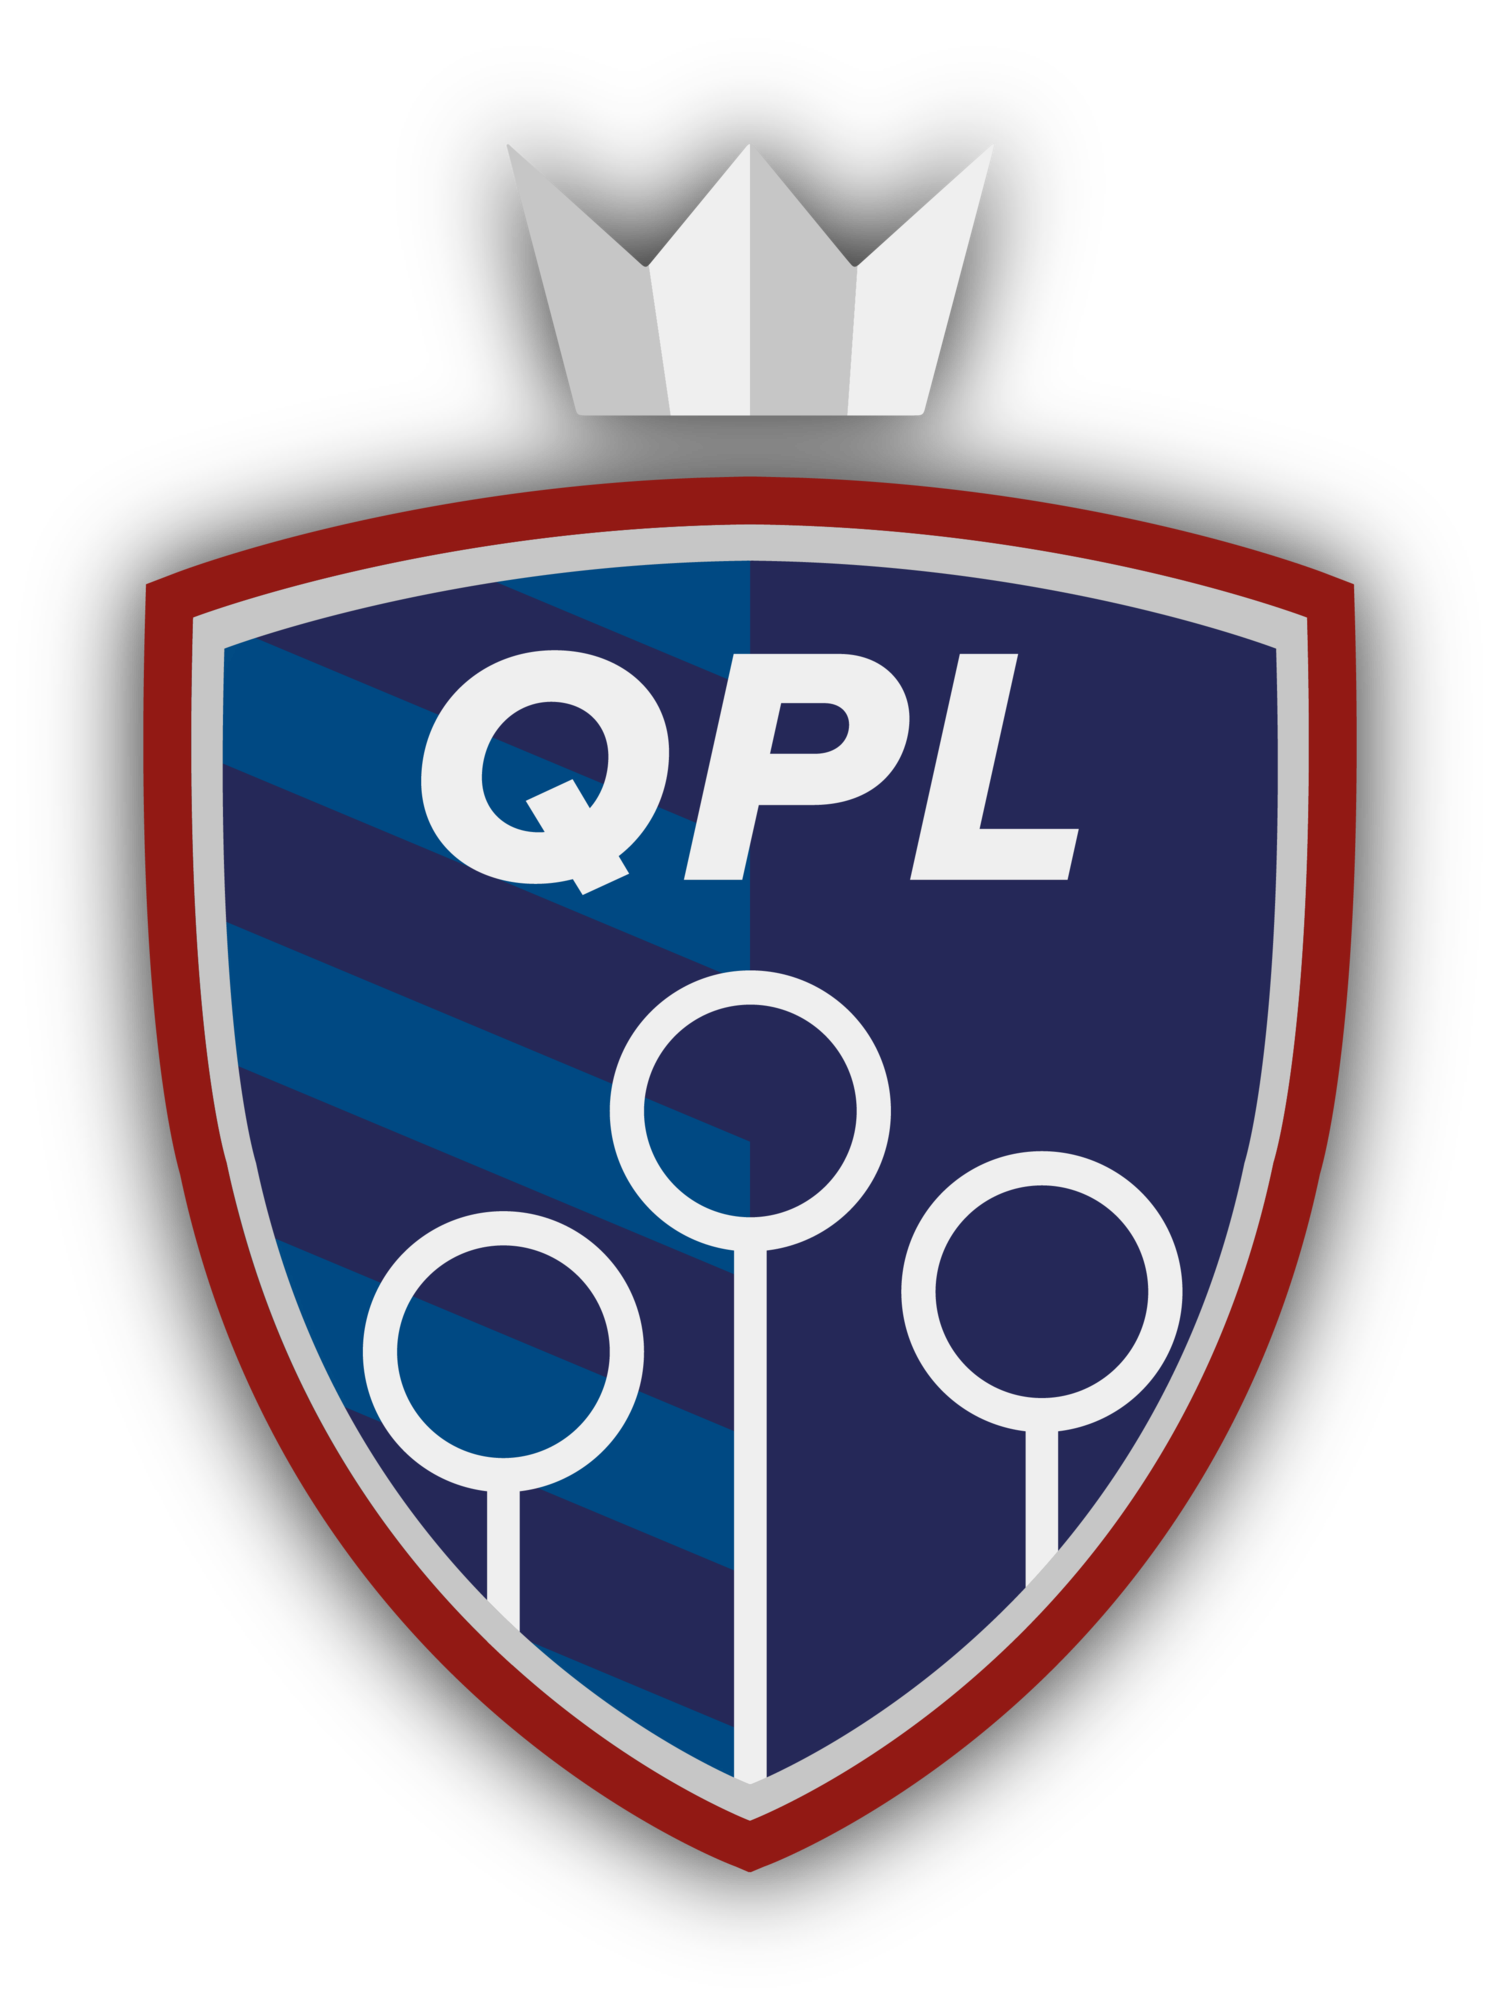 The Quidditch Premier League